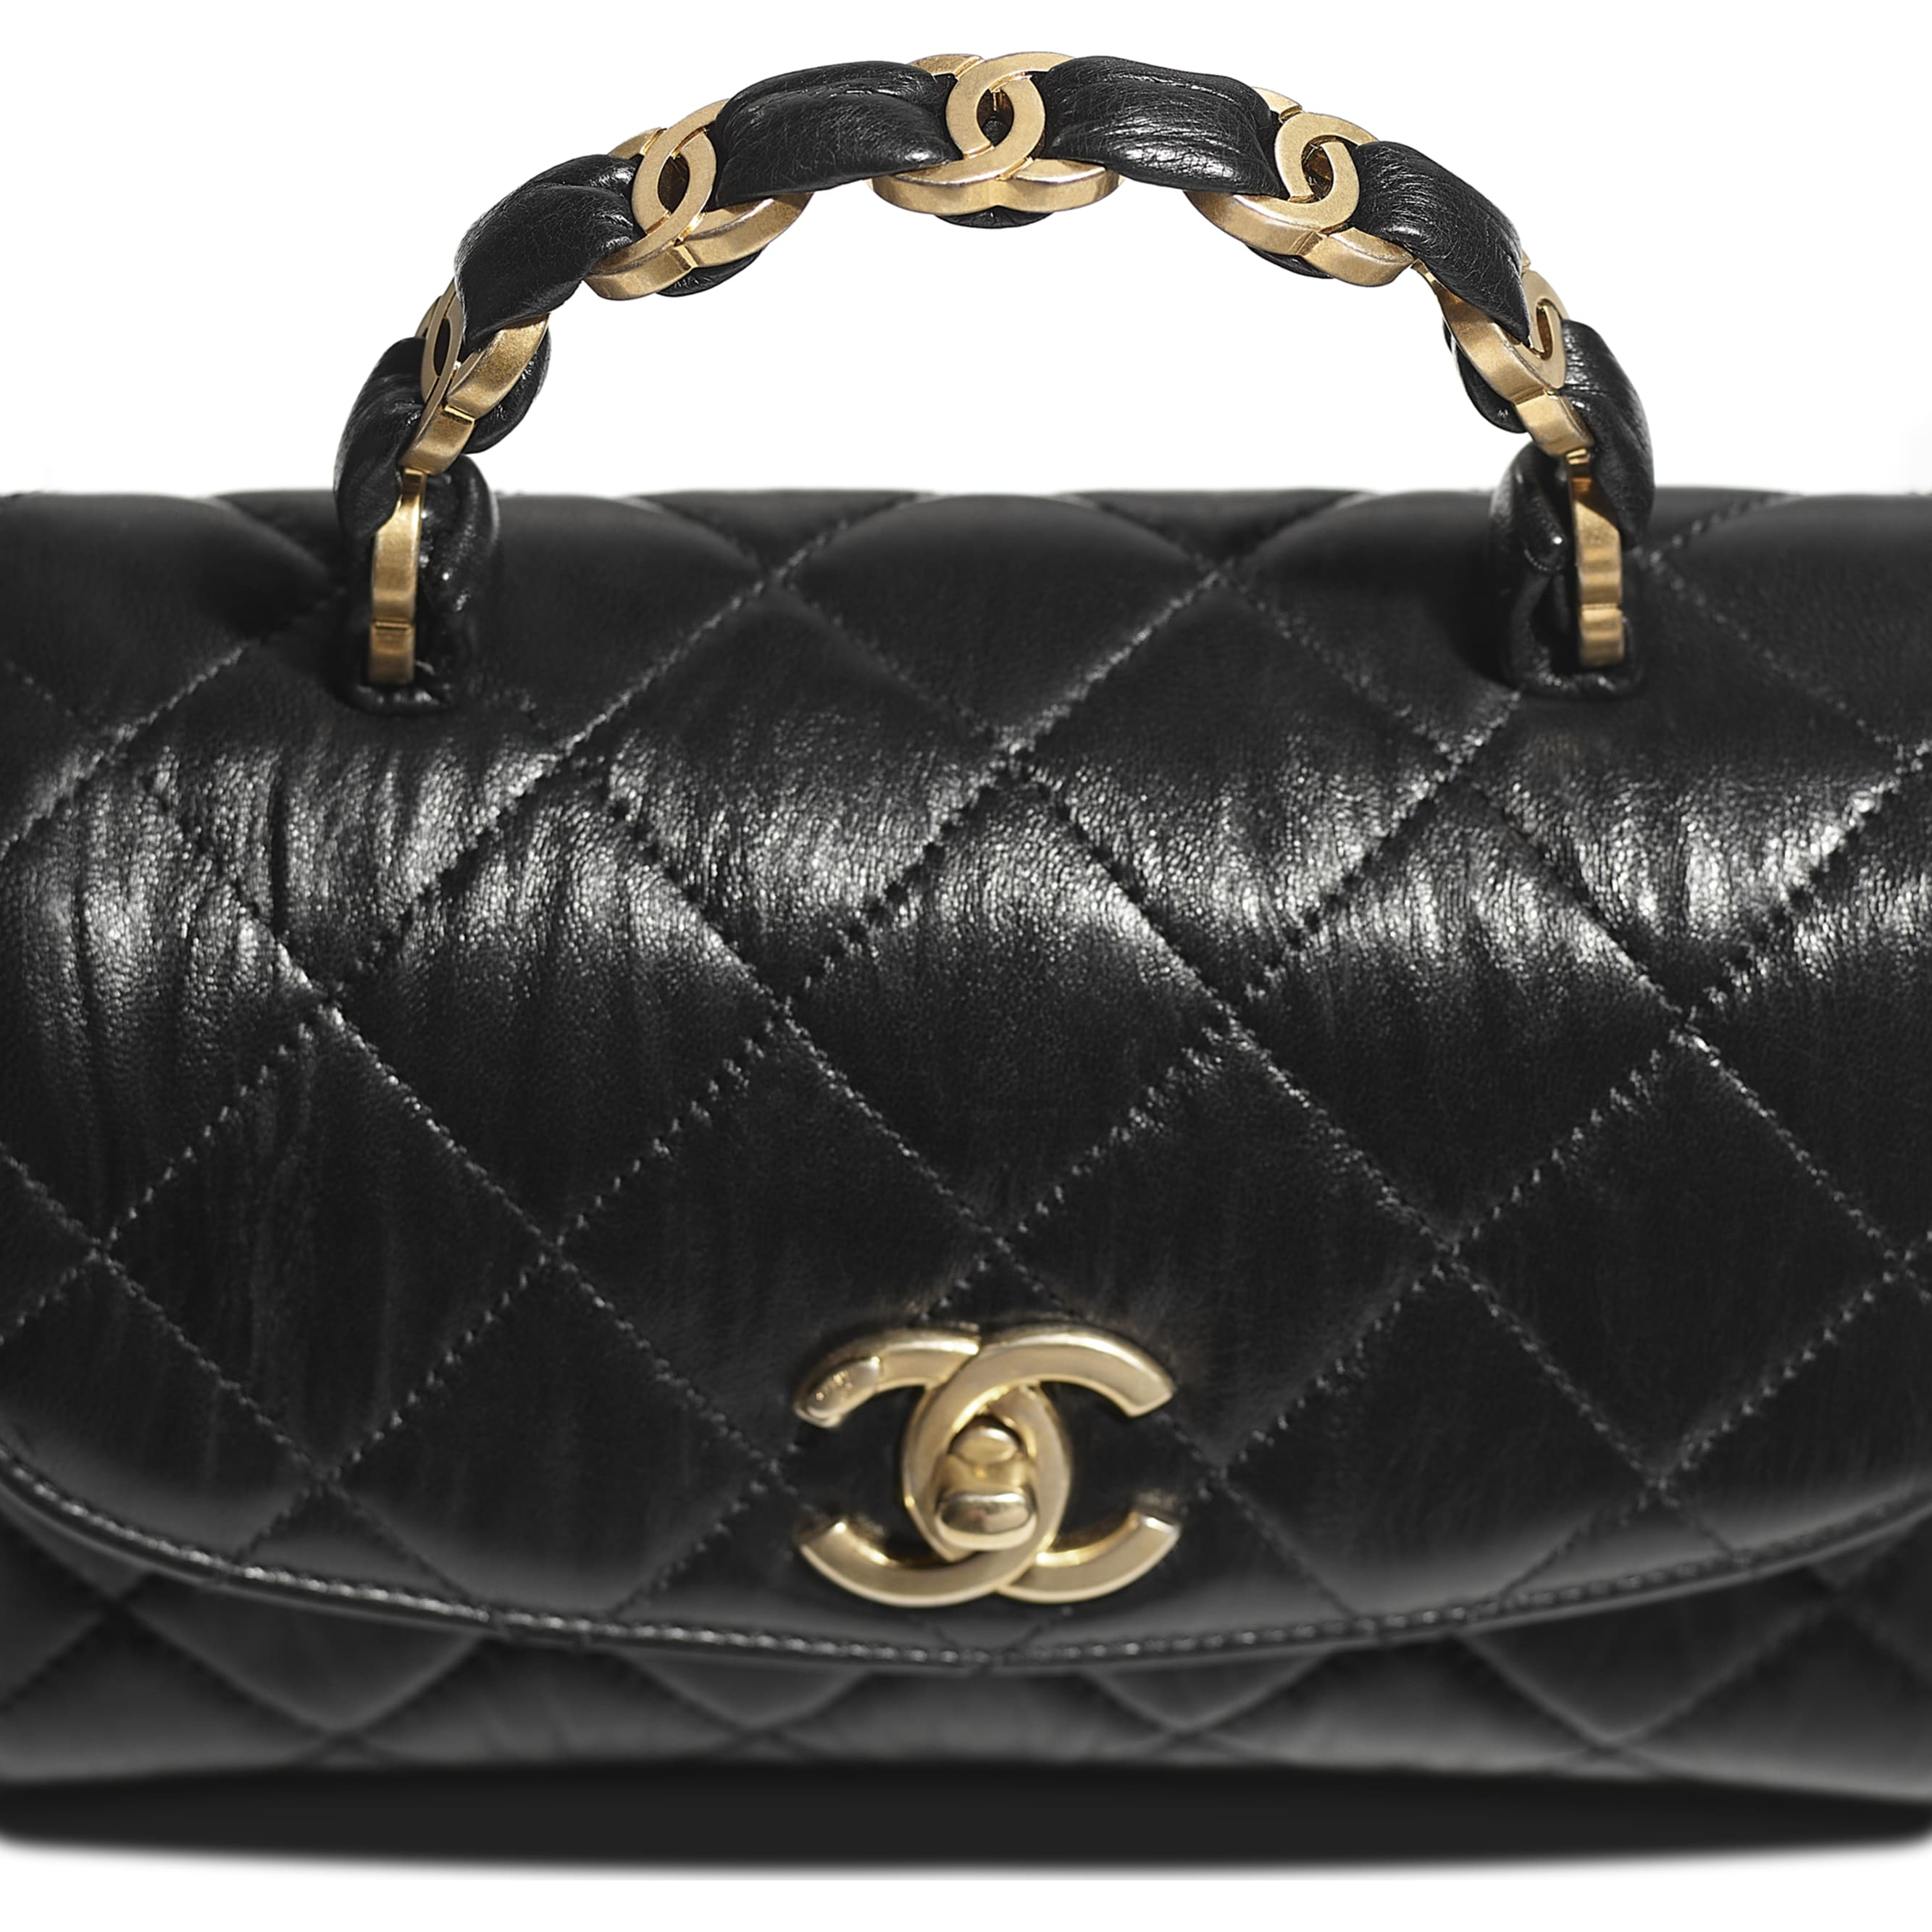 Mini Flap Bag with Top Handle - Black - Crumpled Lambskin & Gold-Tone Metal - CHANEL - Extra view - see standard sized version